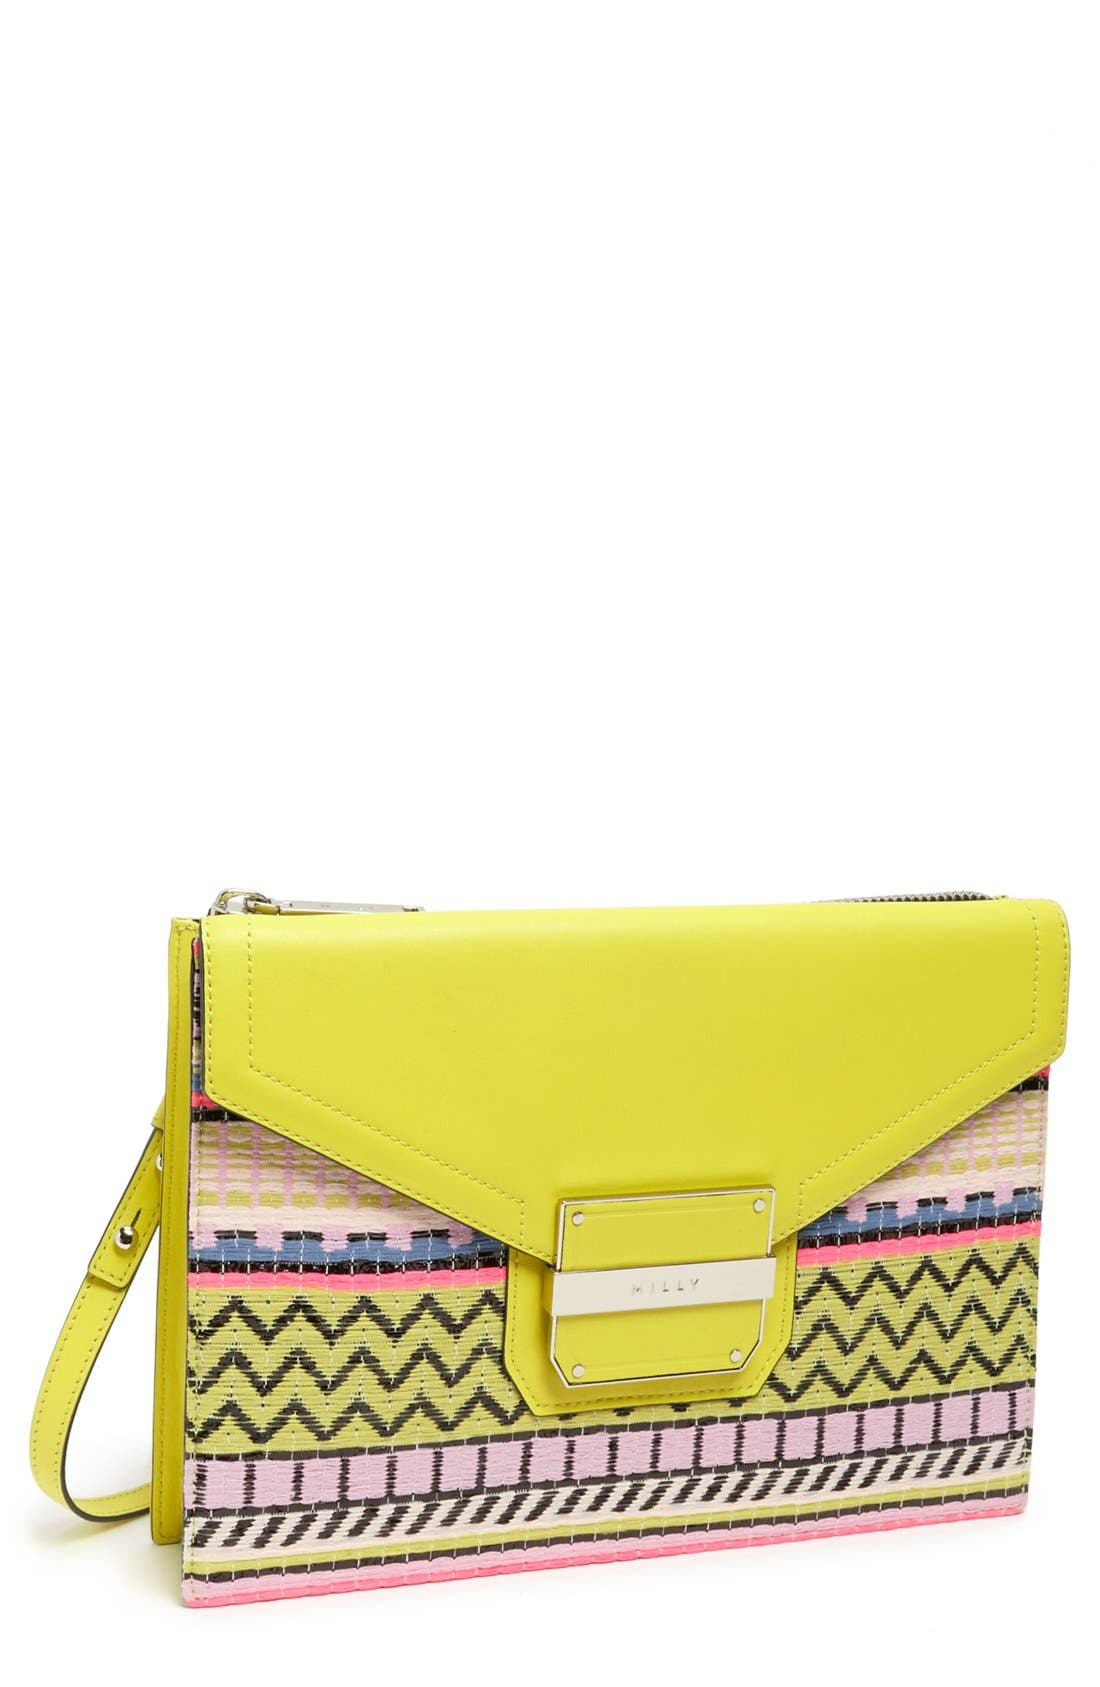 Alternate Image 1 Selected - Milly 'Rich' Jacquard & Leather Shoulder Bag